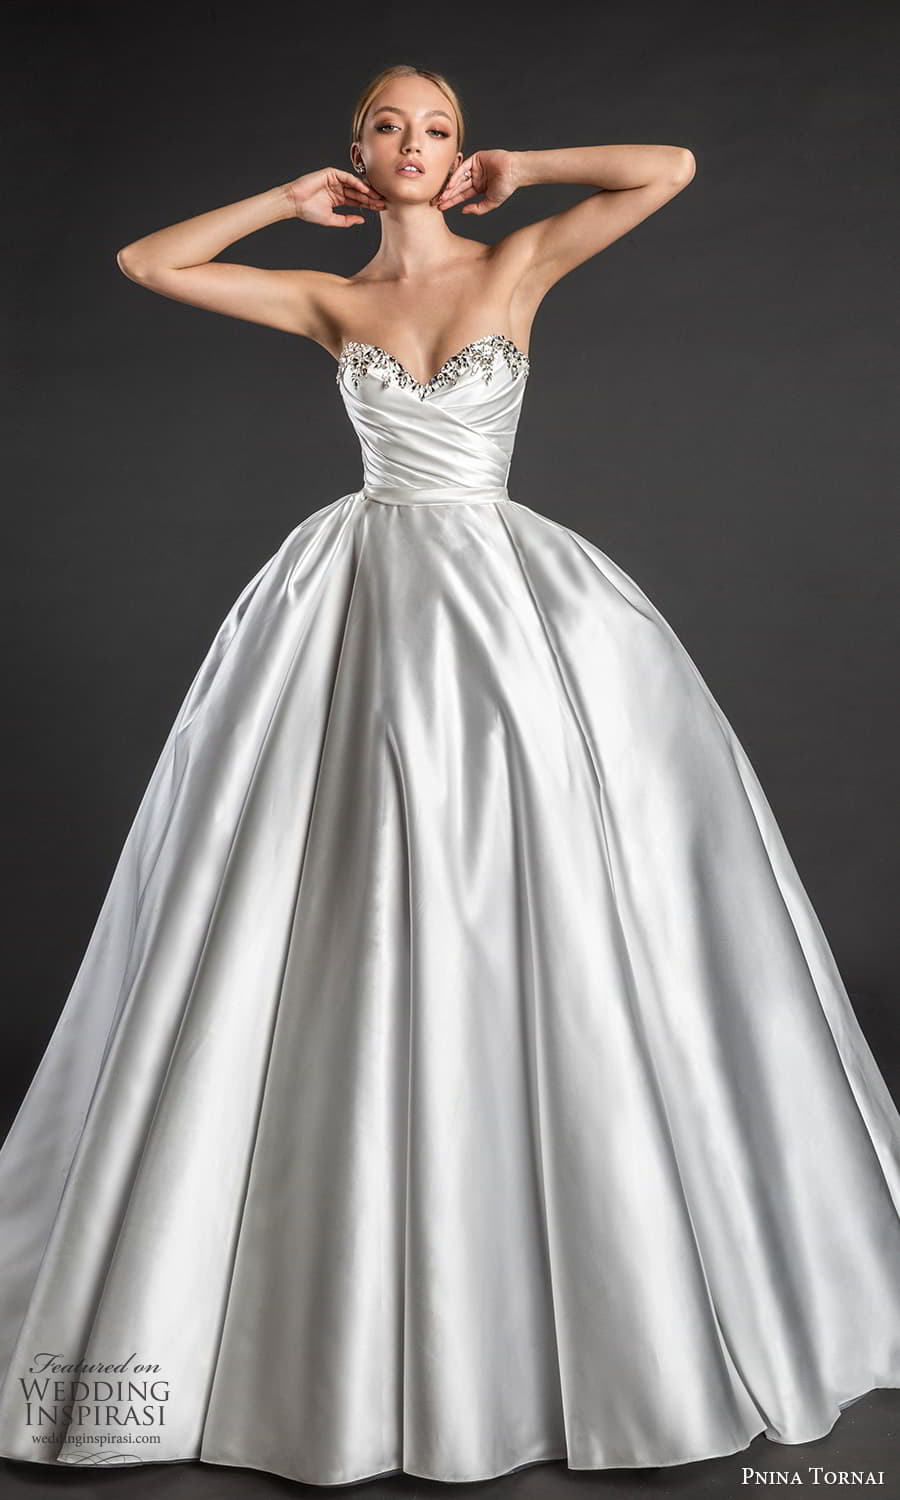 pnina tornai 2022 love bridal strapless embellished sweetheart neckline ruched bodice minimalist a line ball gown wedding dress chapel train bow back (3) fv